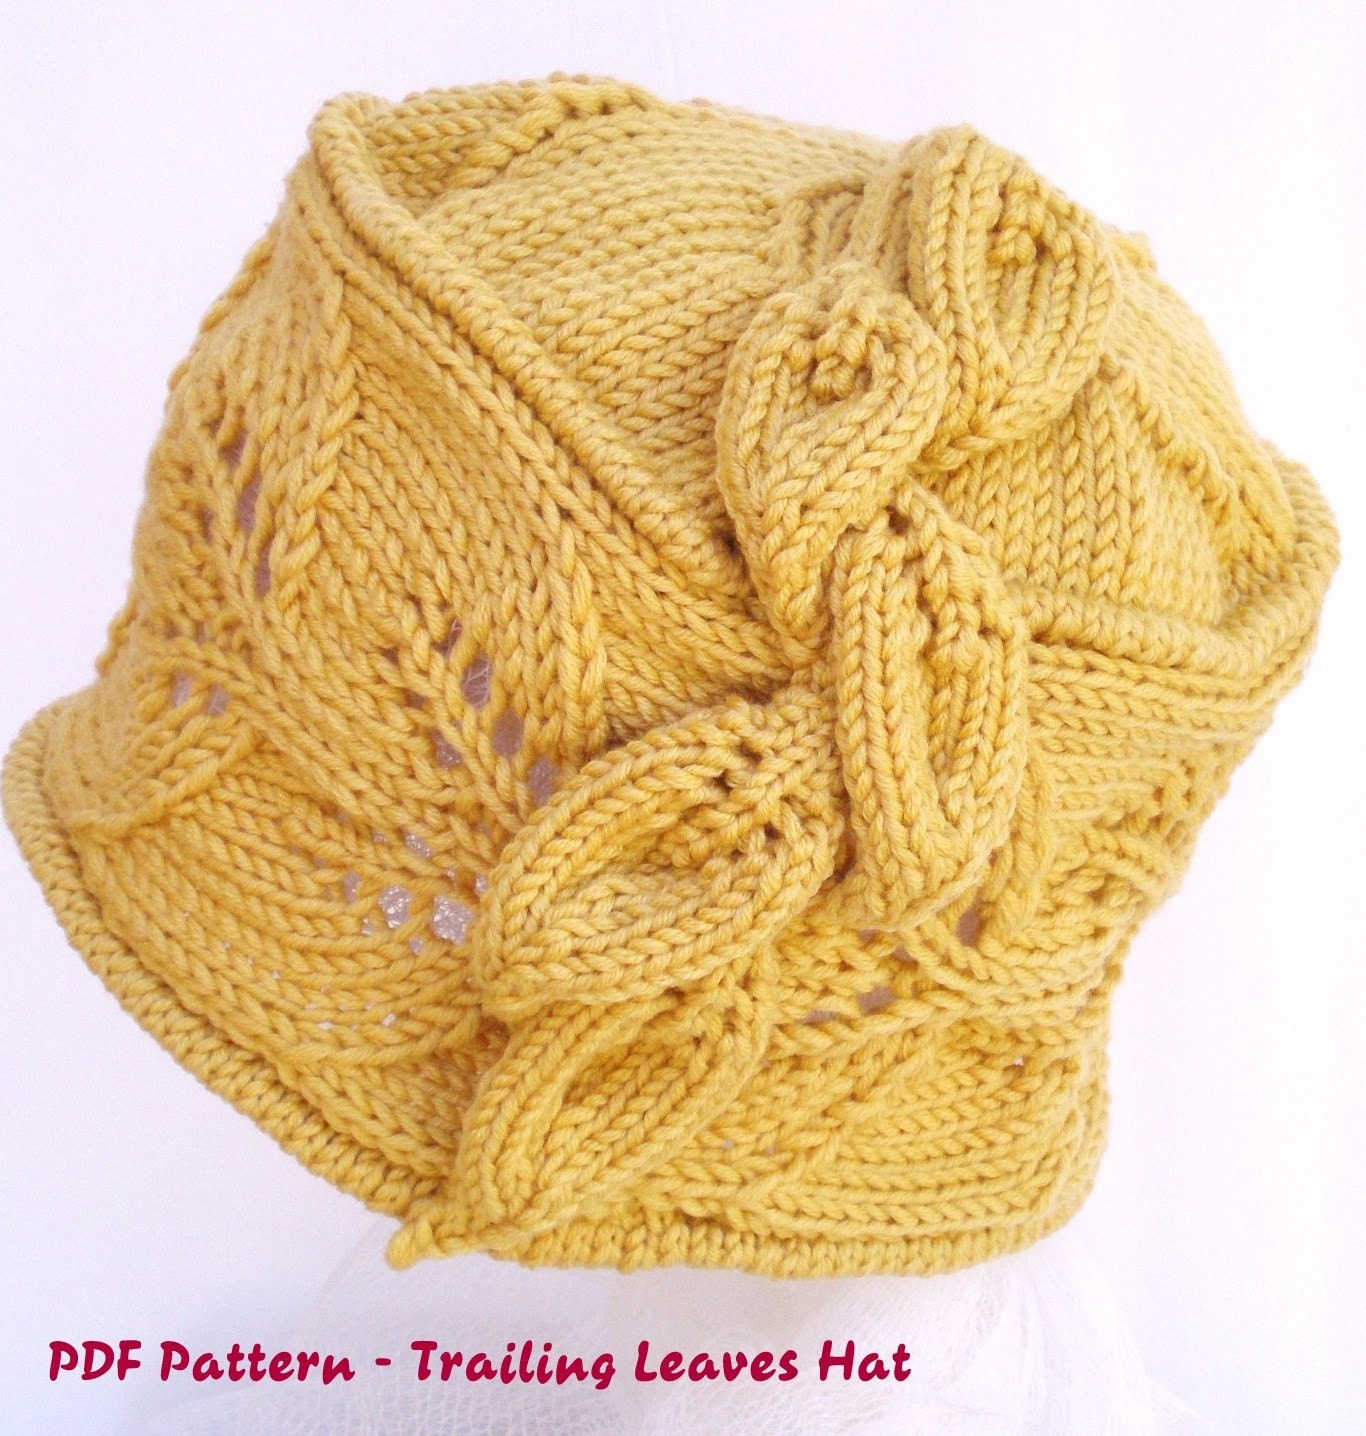 PDF Knitting Pattern Wool Lace Cloche Hat Trailing Leaves